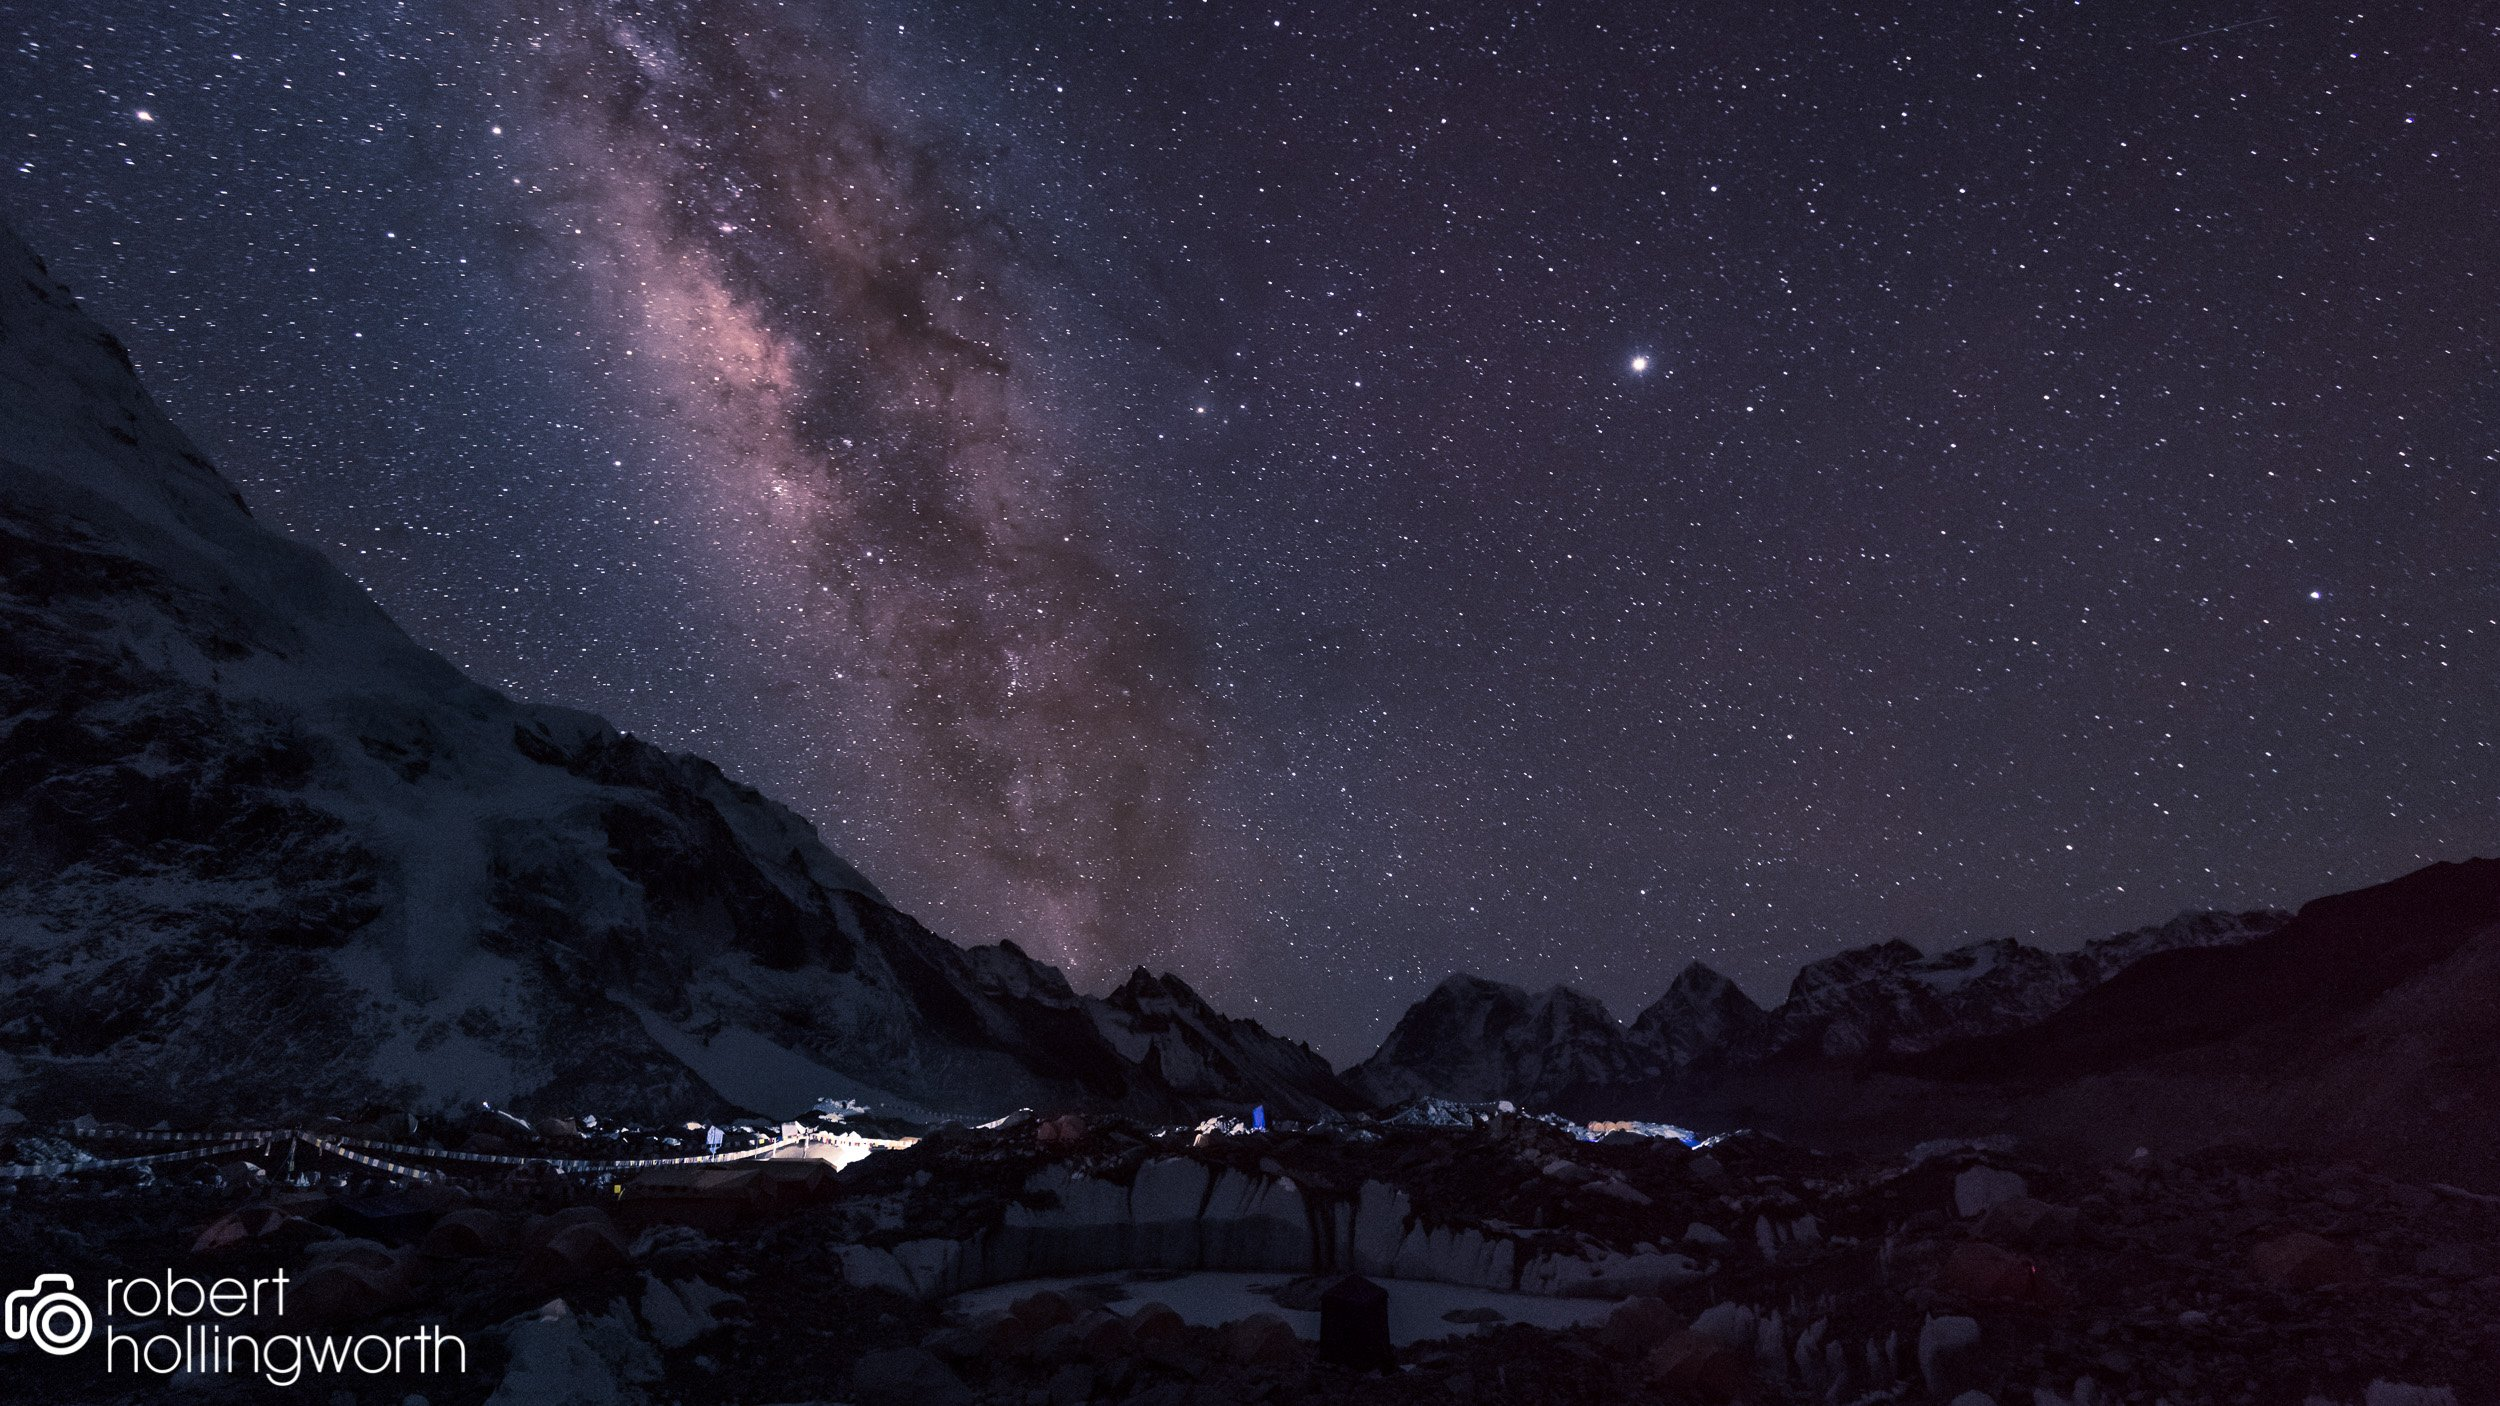 Everest Base Camp with the Milkyway